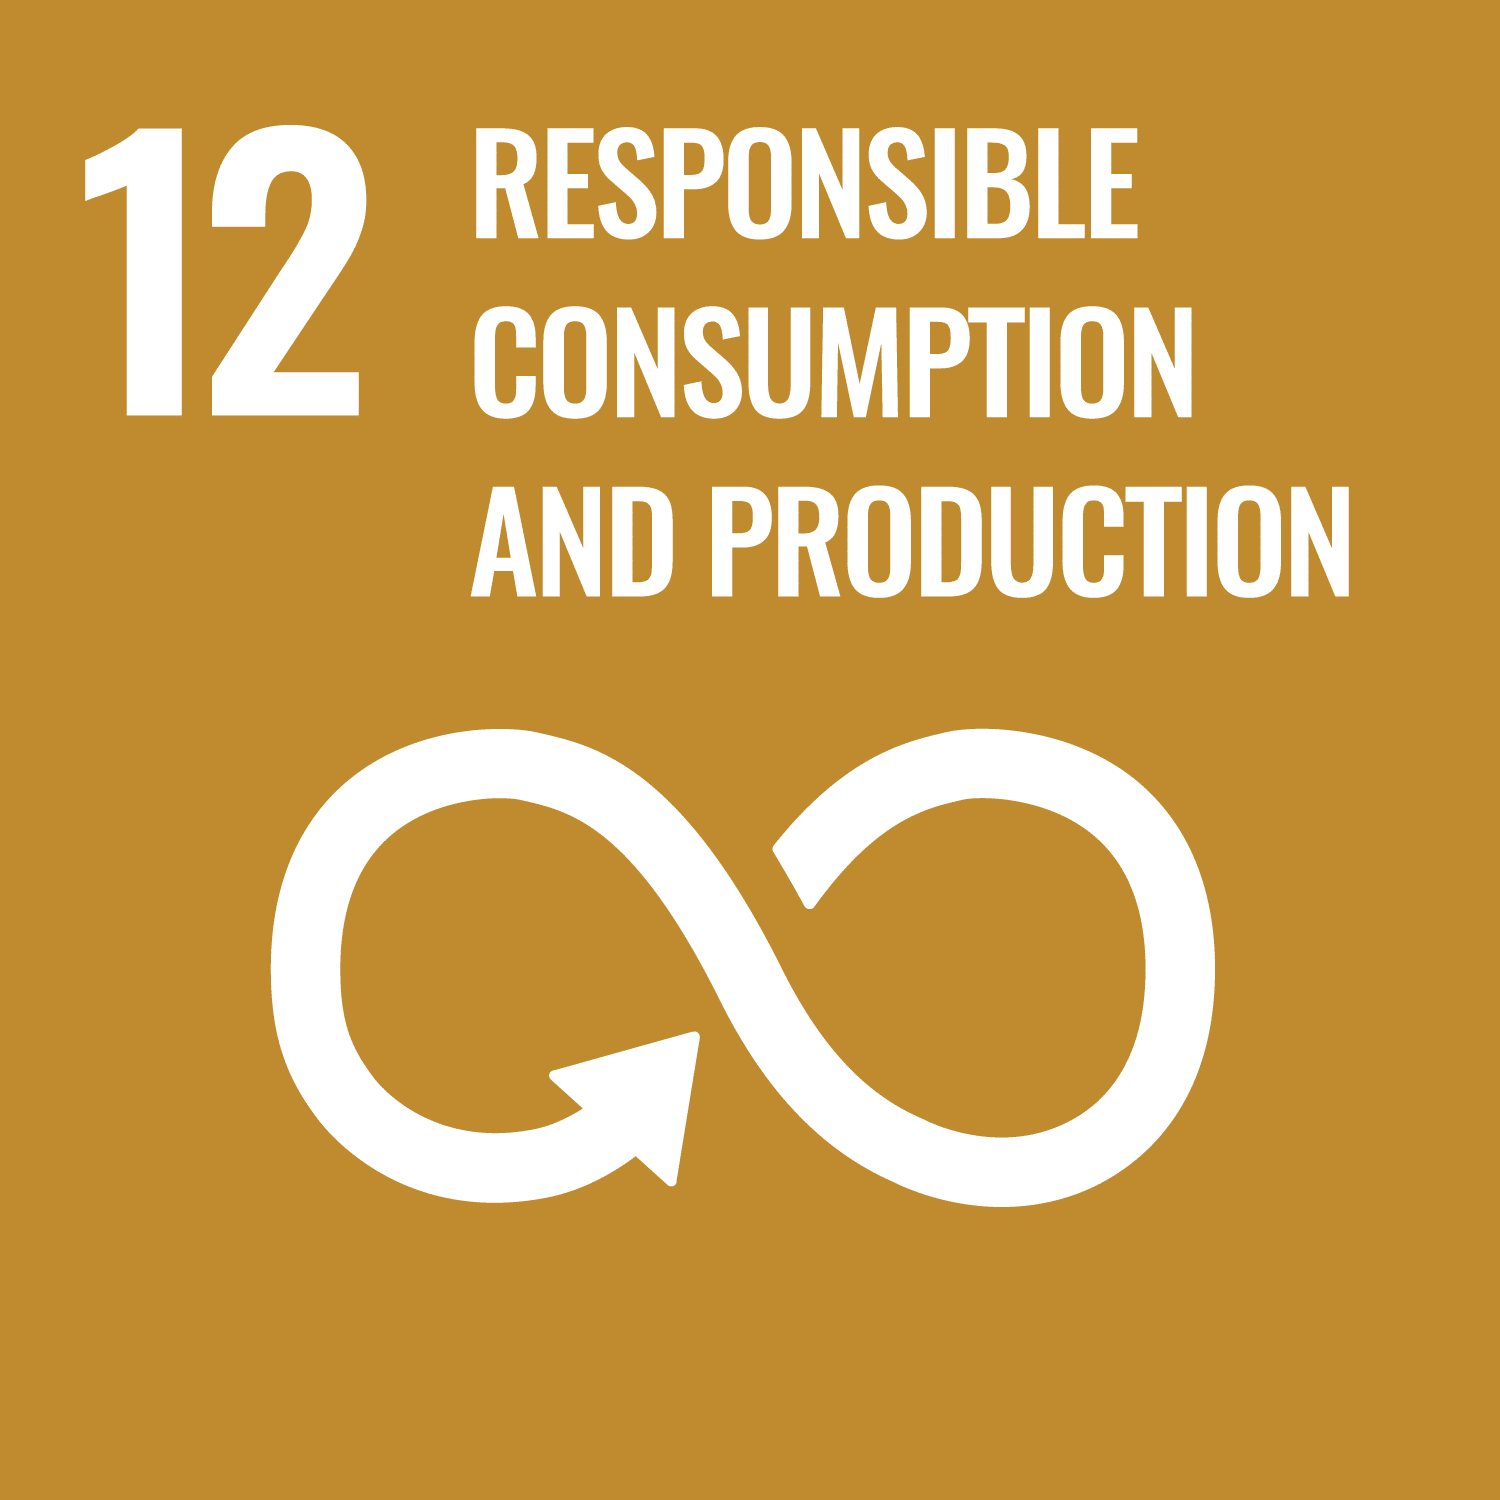 SDG Goal 12-Responsible Consumption and Production